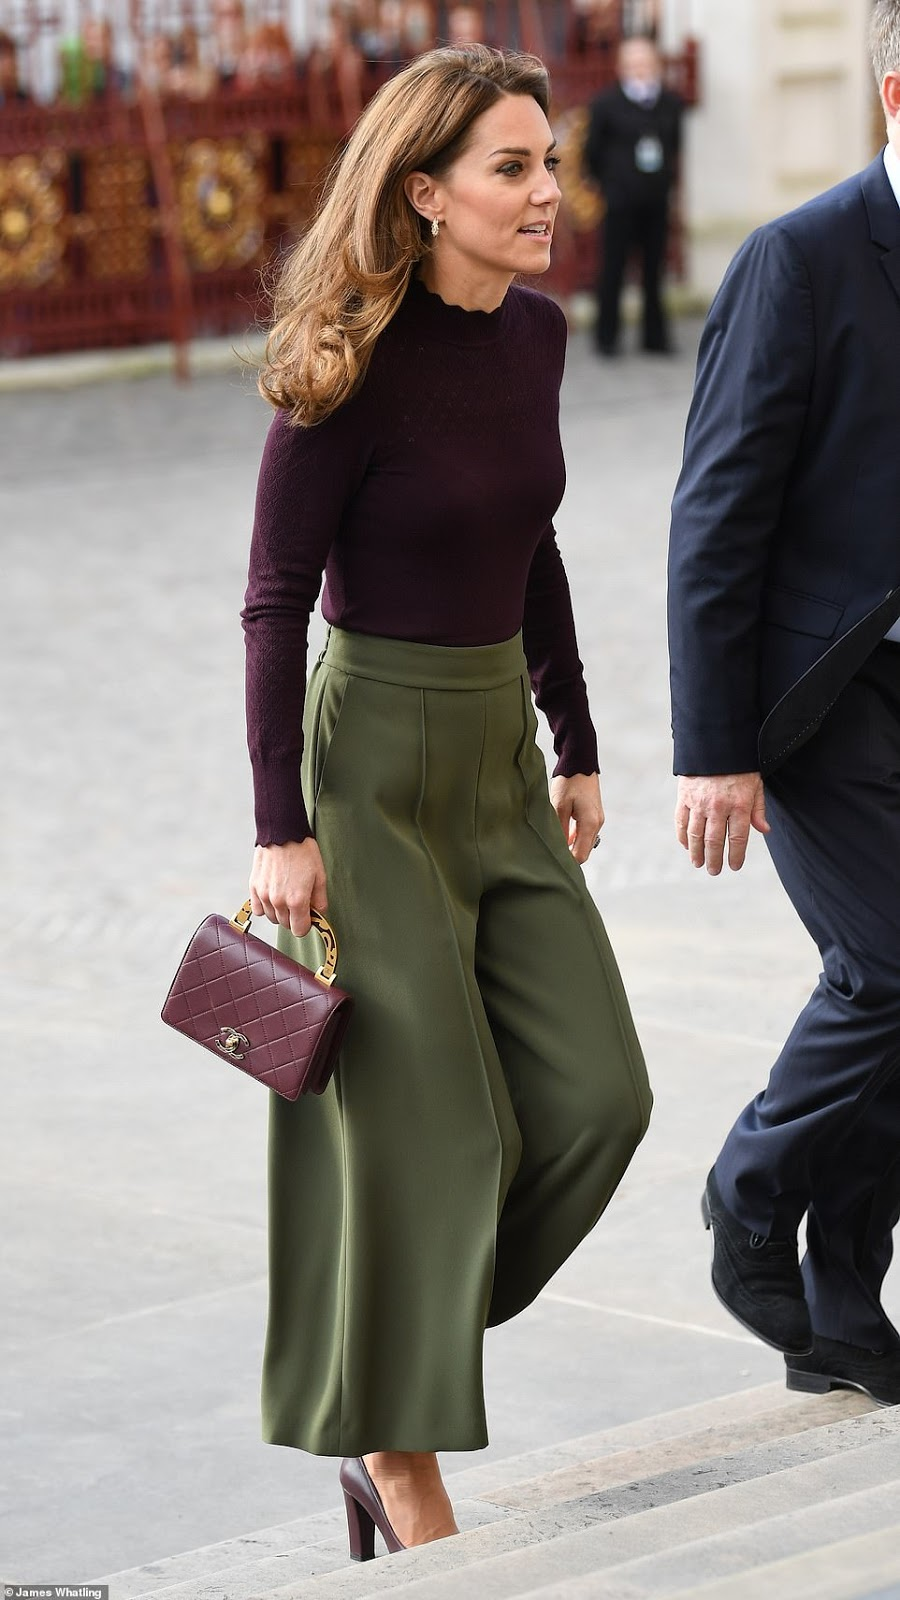 Kate Middleton steps out in Jigsaw culottes and a Warehouse jumper for a visit to the Natural History Museum